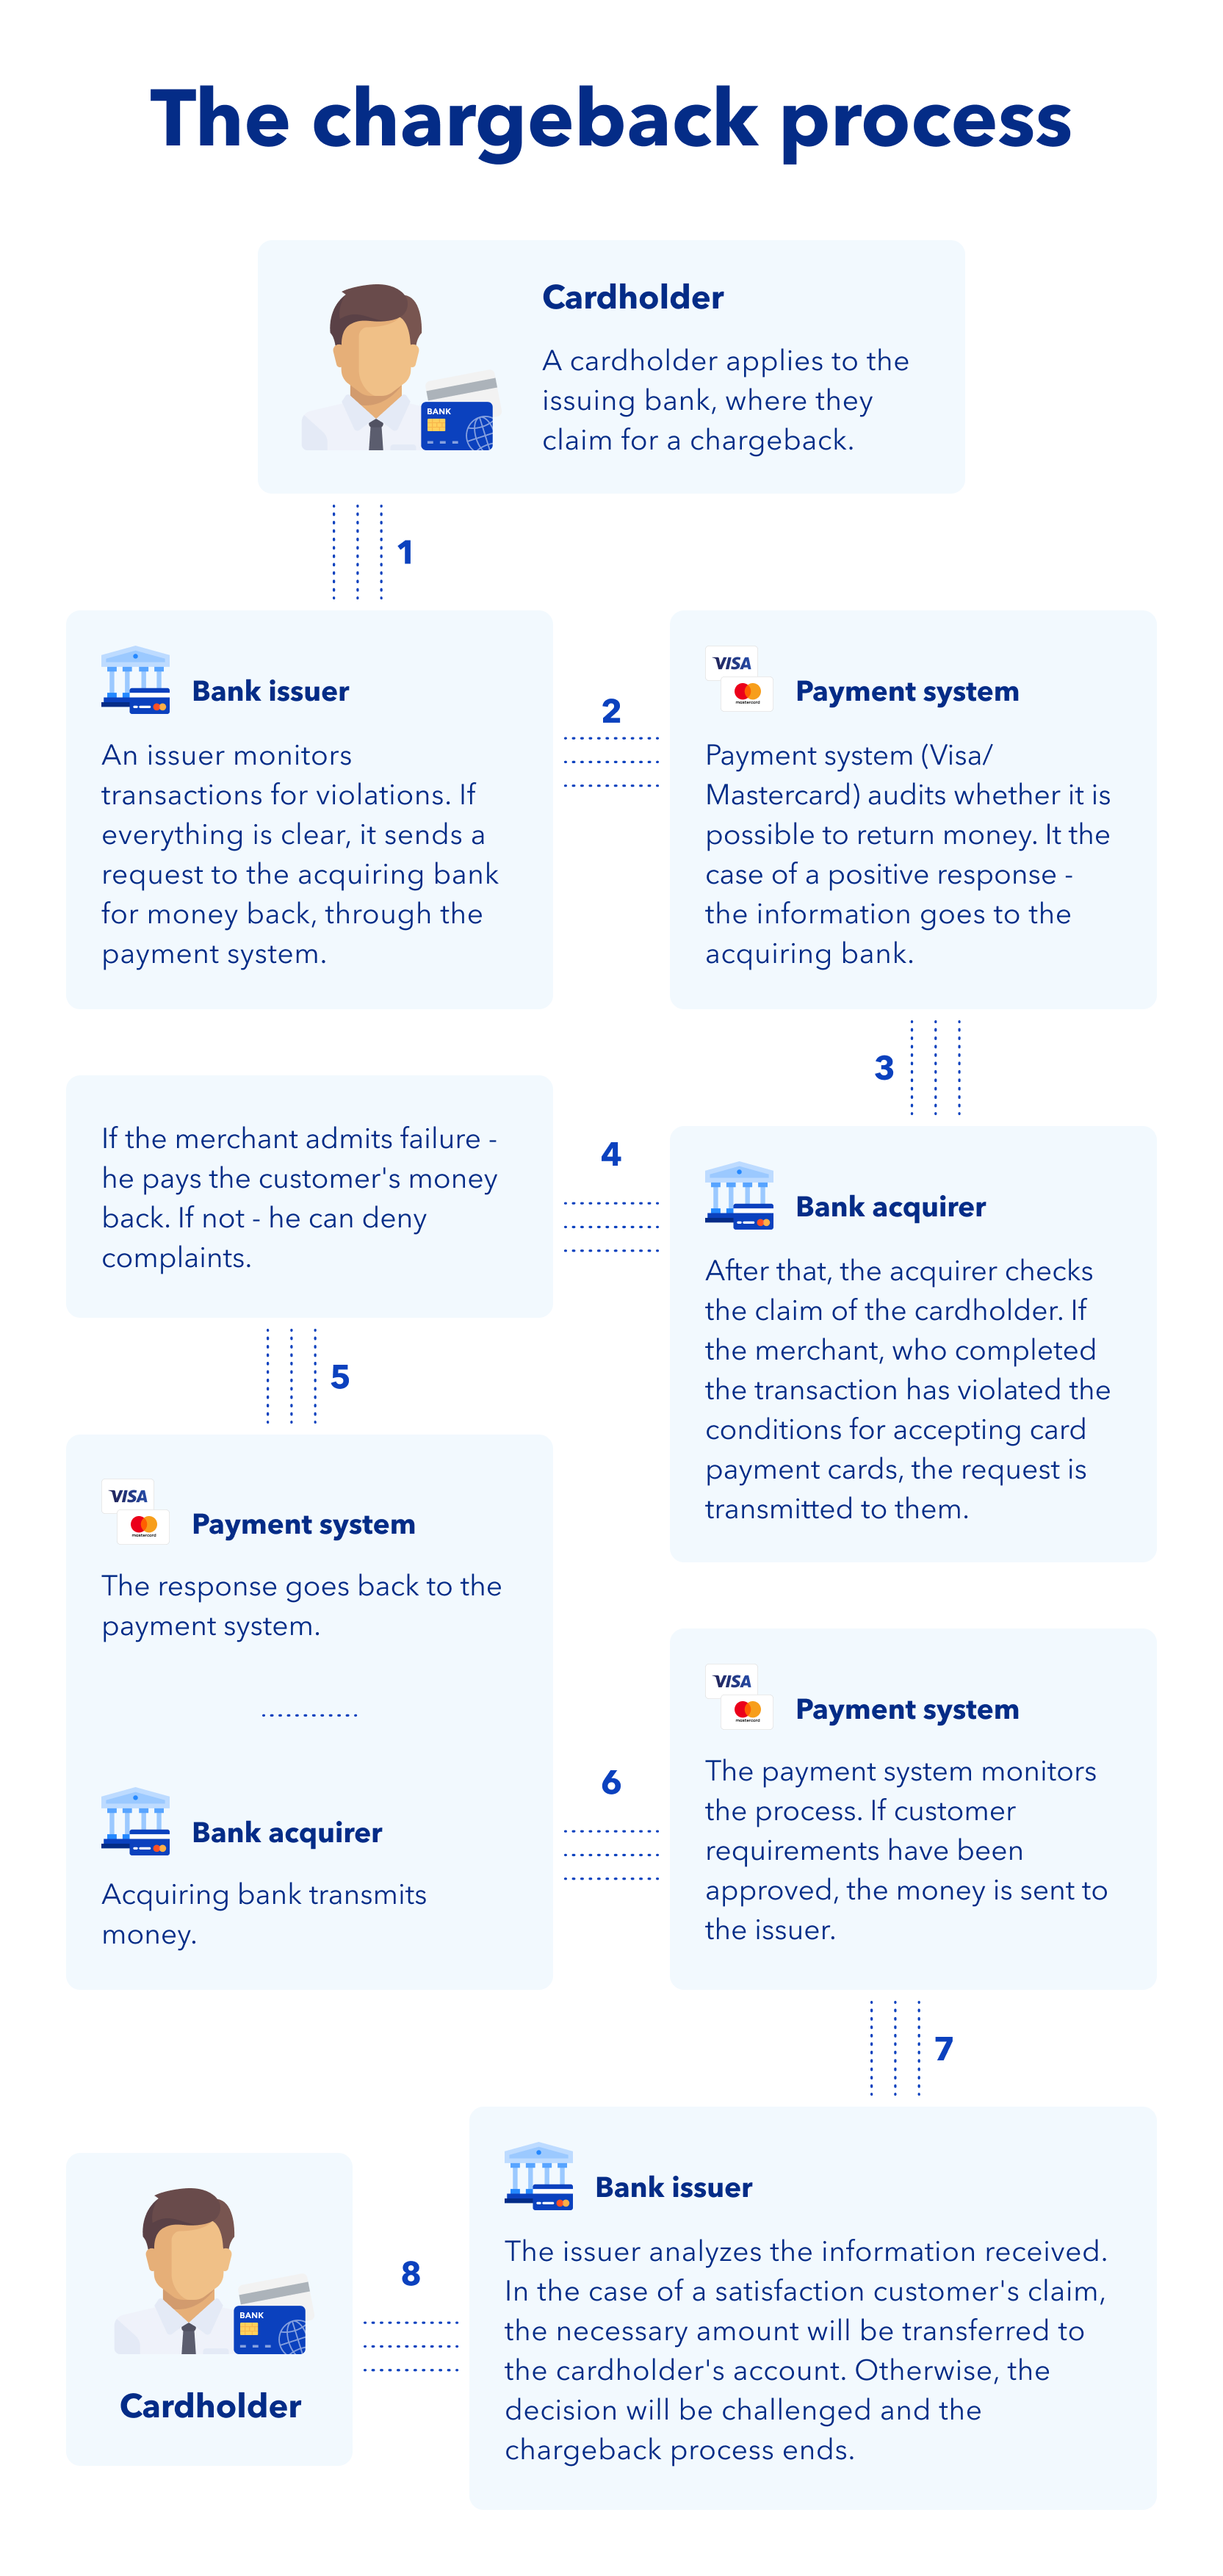 The chargeback process